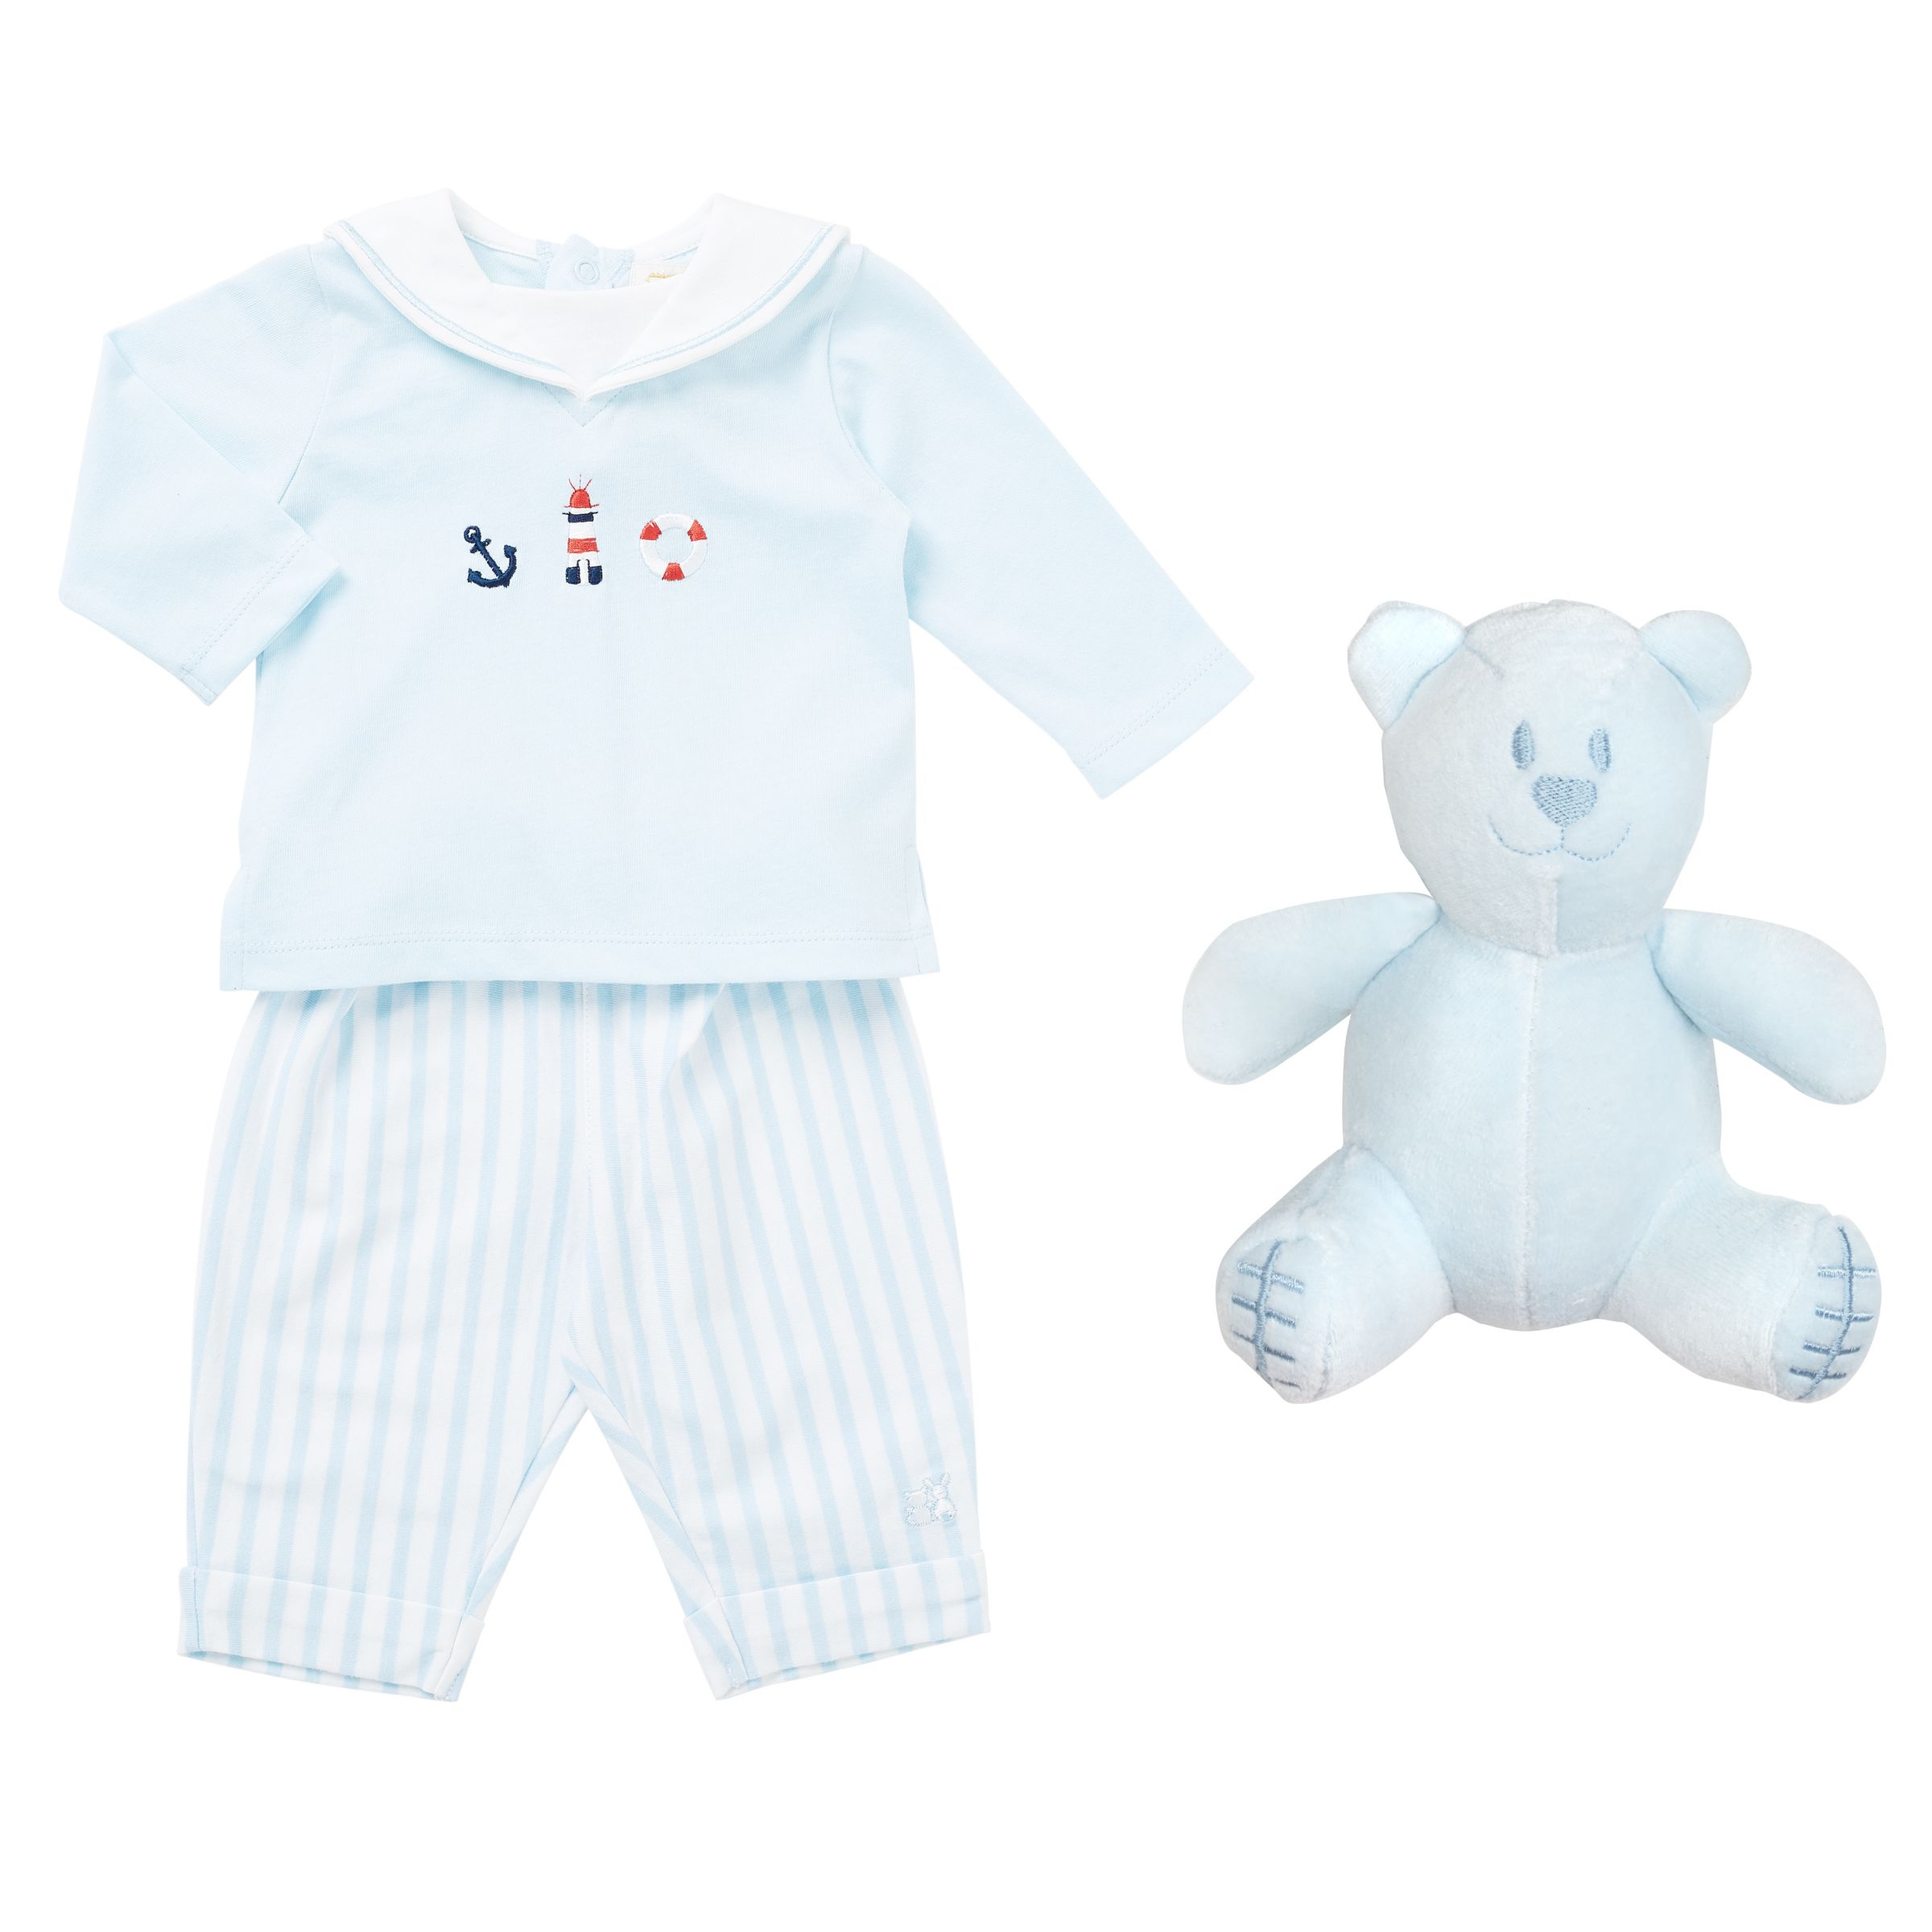 Emile et Rose Emile et Rose Baby Karl Sailor Two Piece Set, Blue/White